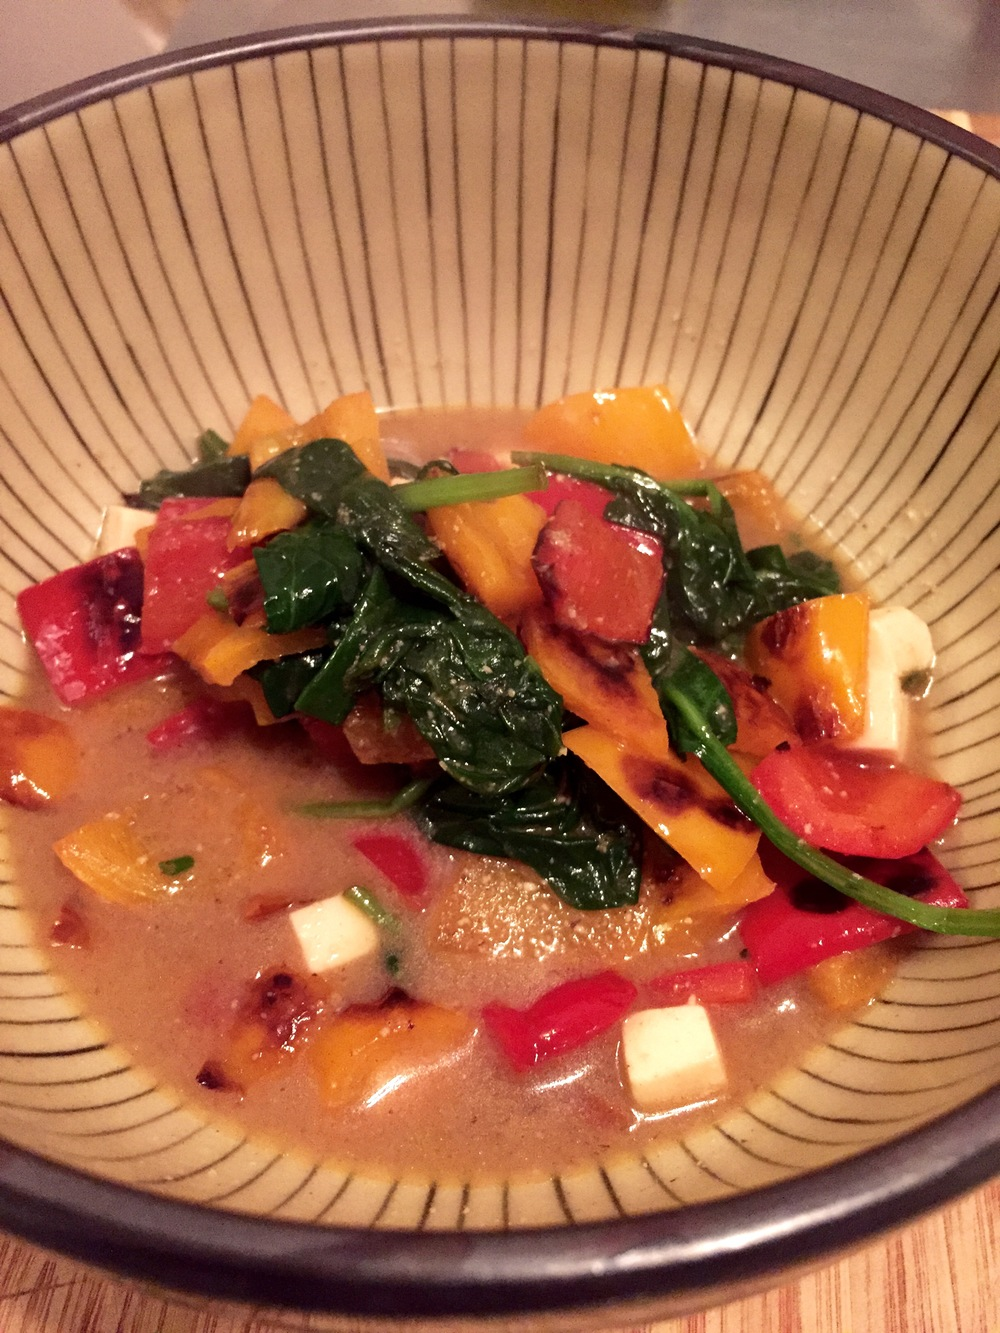 Peppers, spinach and miso broth